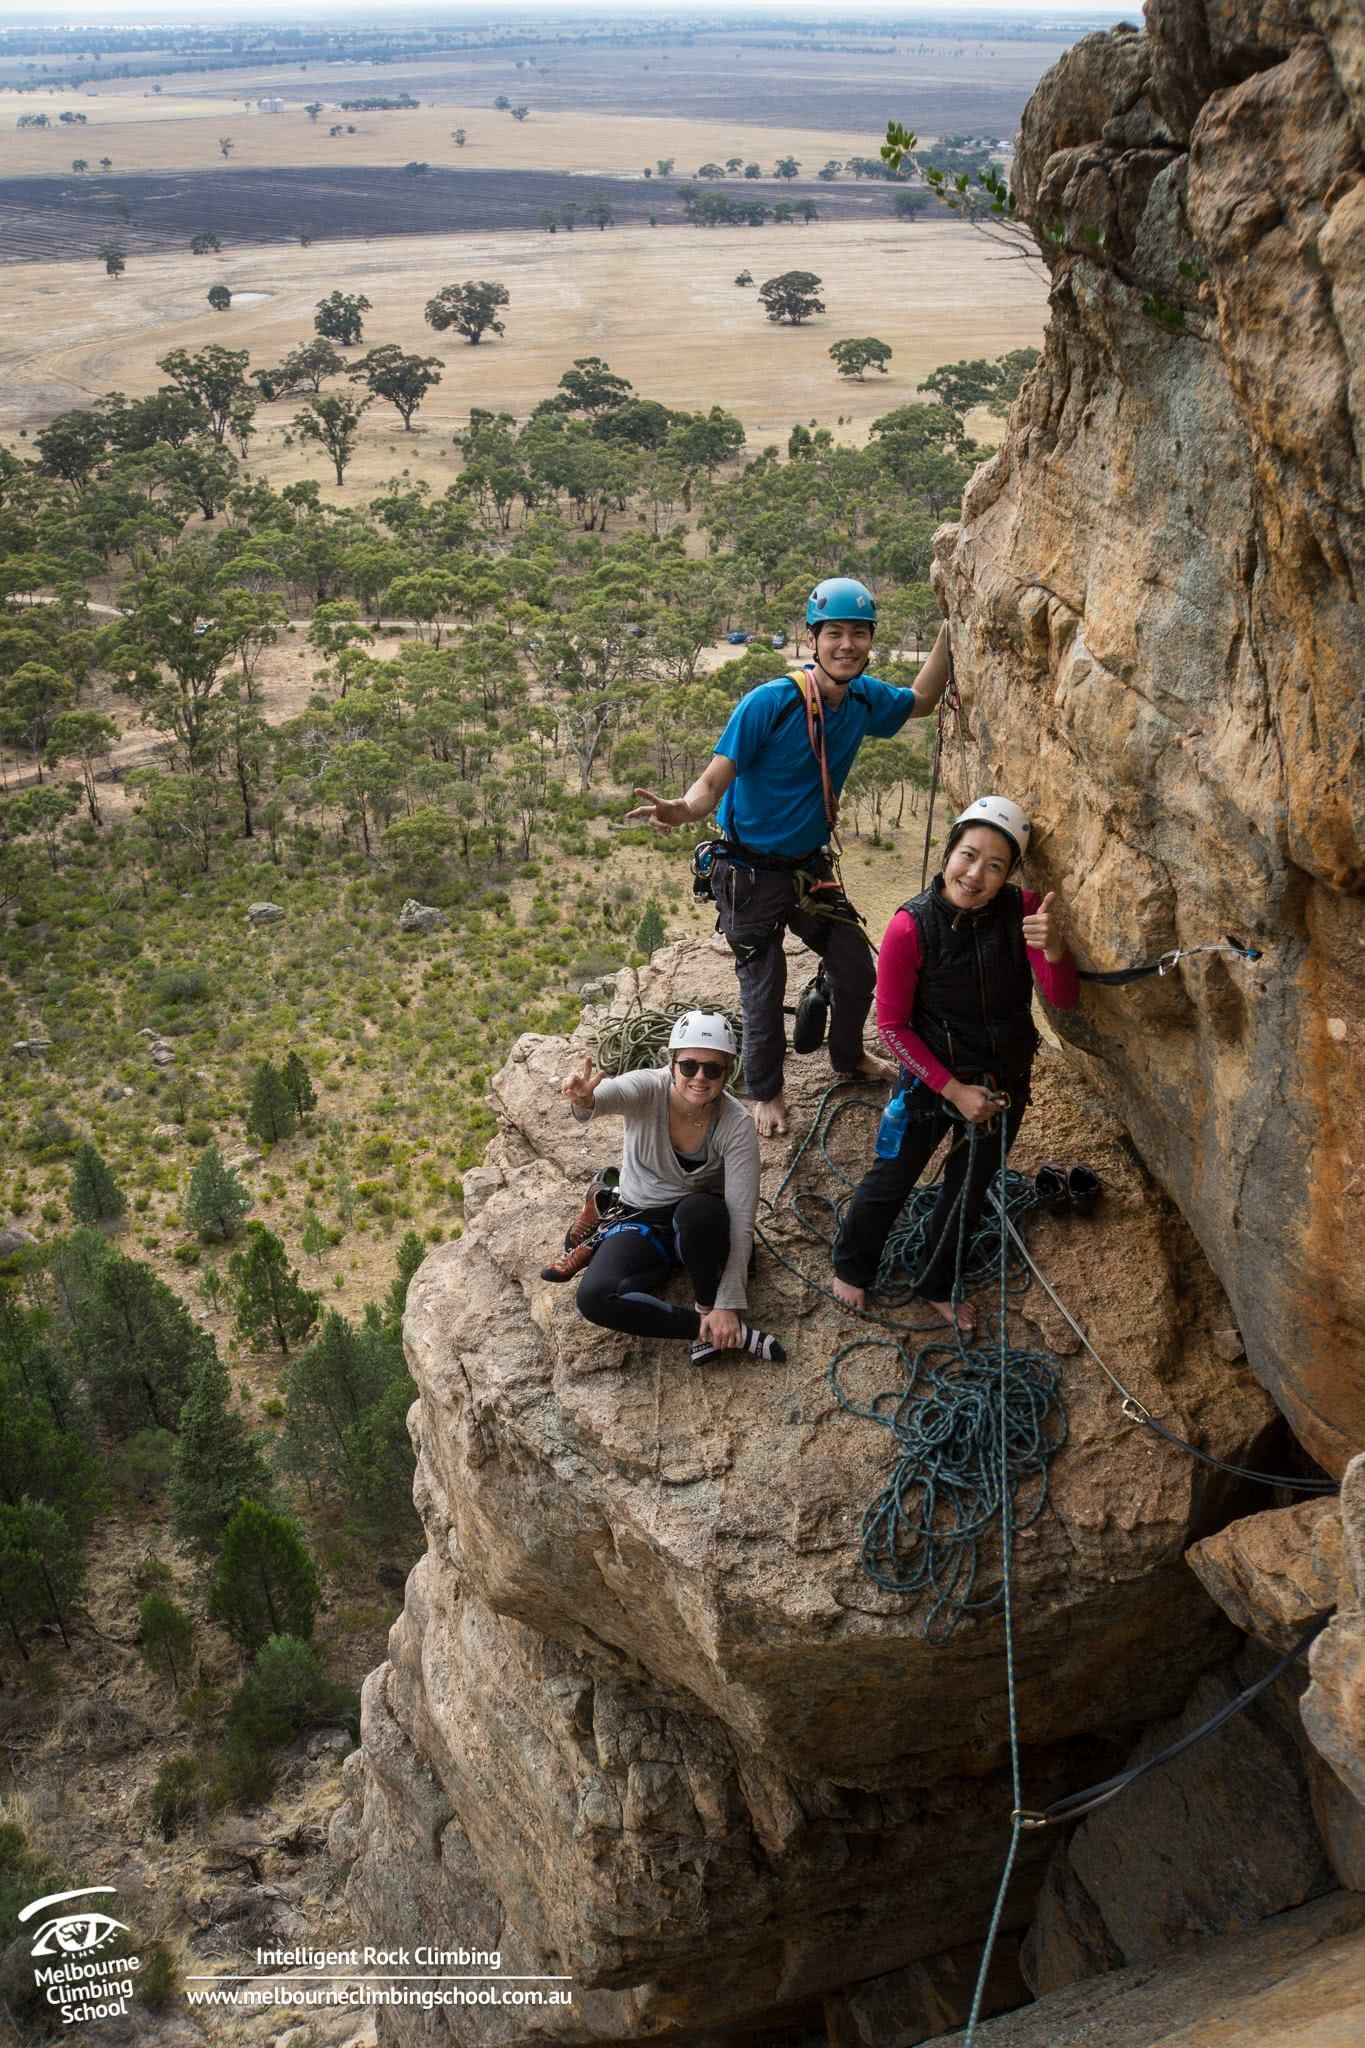 Aaron Lowndes rock melbourne climbing school introductory route